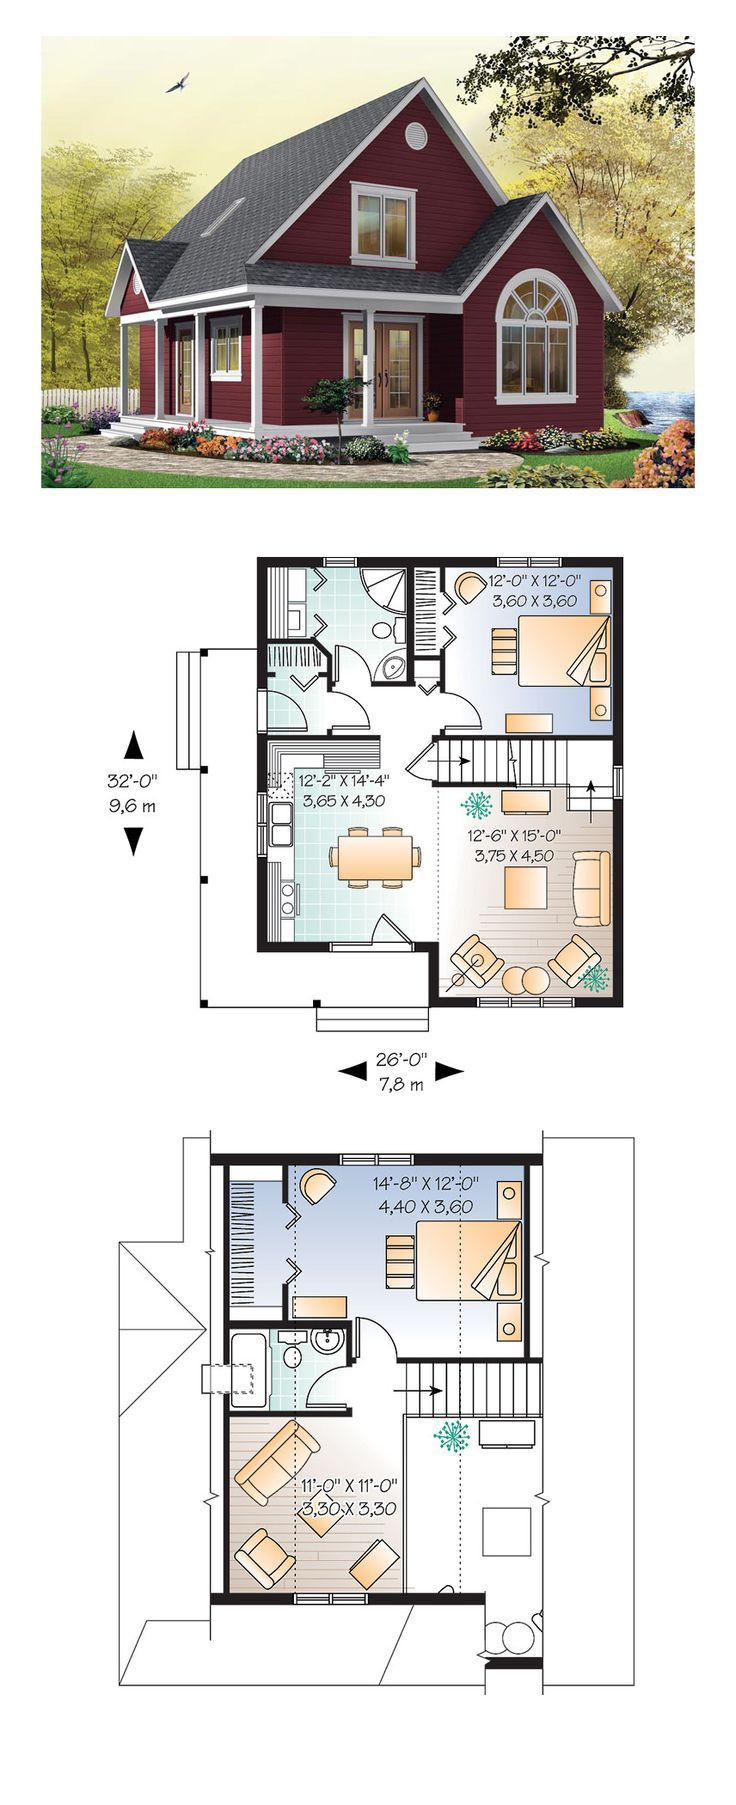 Cottage style cool house plan id chp 28554 total living area 1226